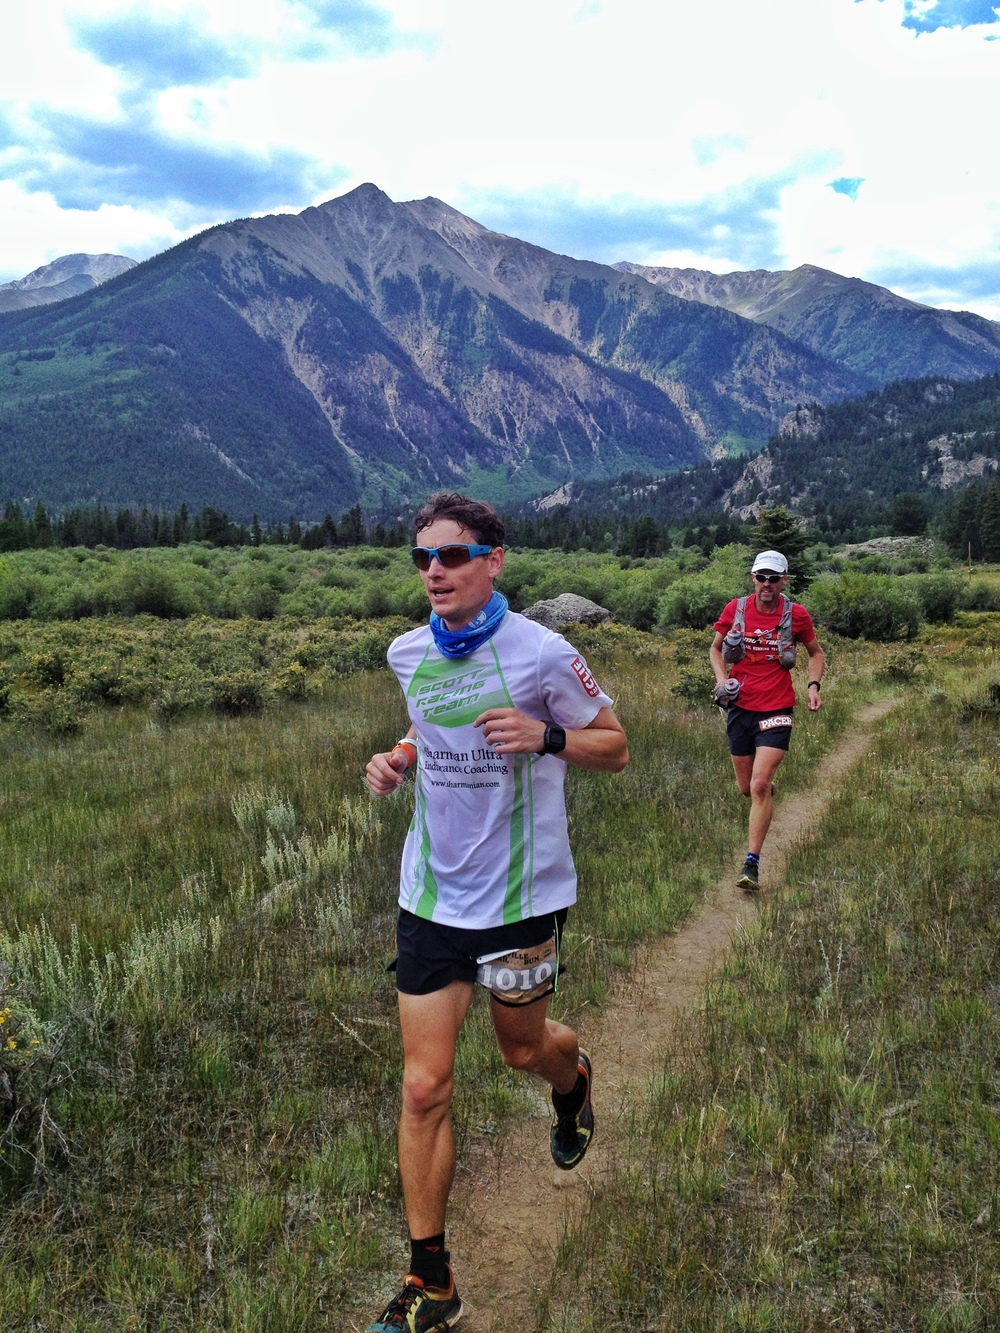 Ian feeling at home at Leadville